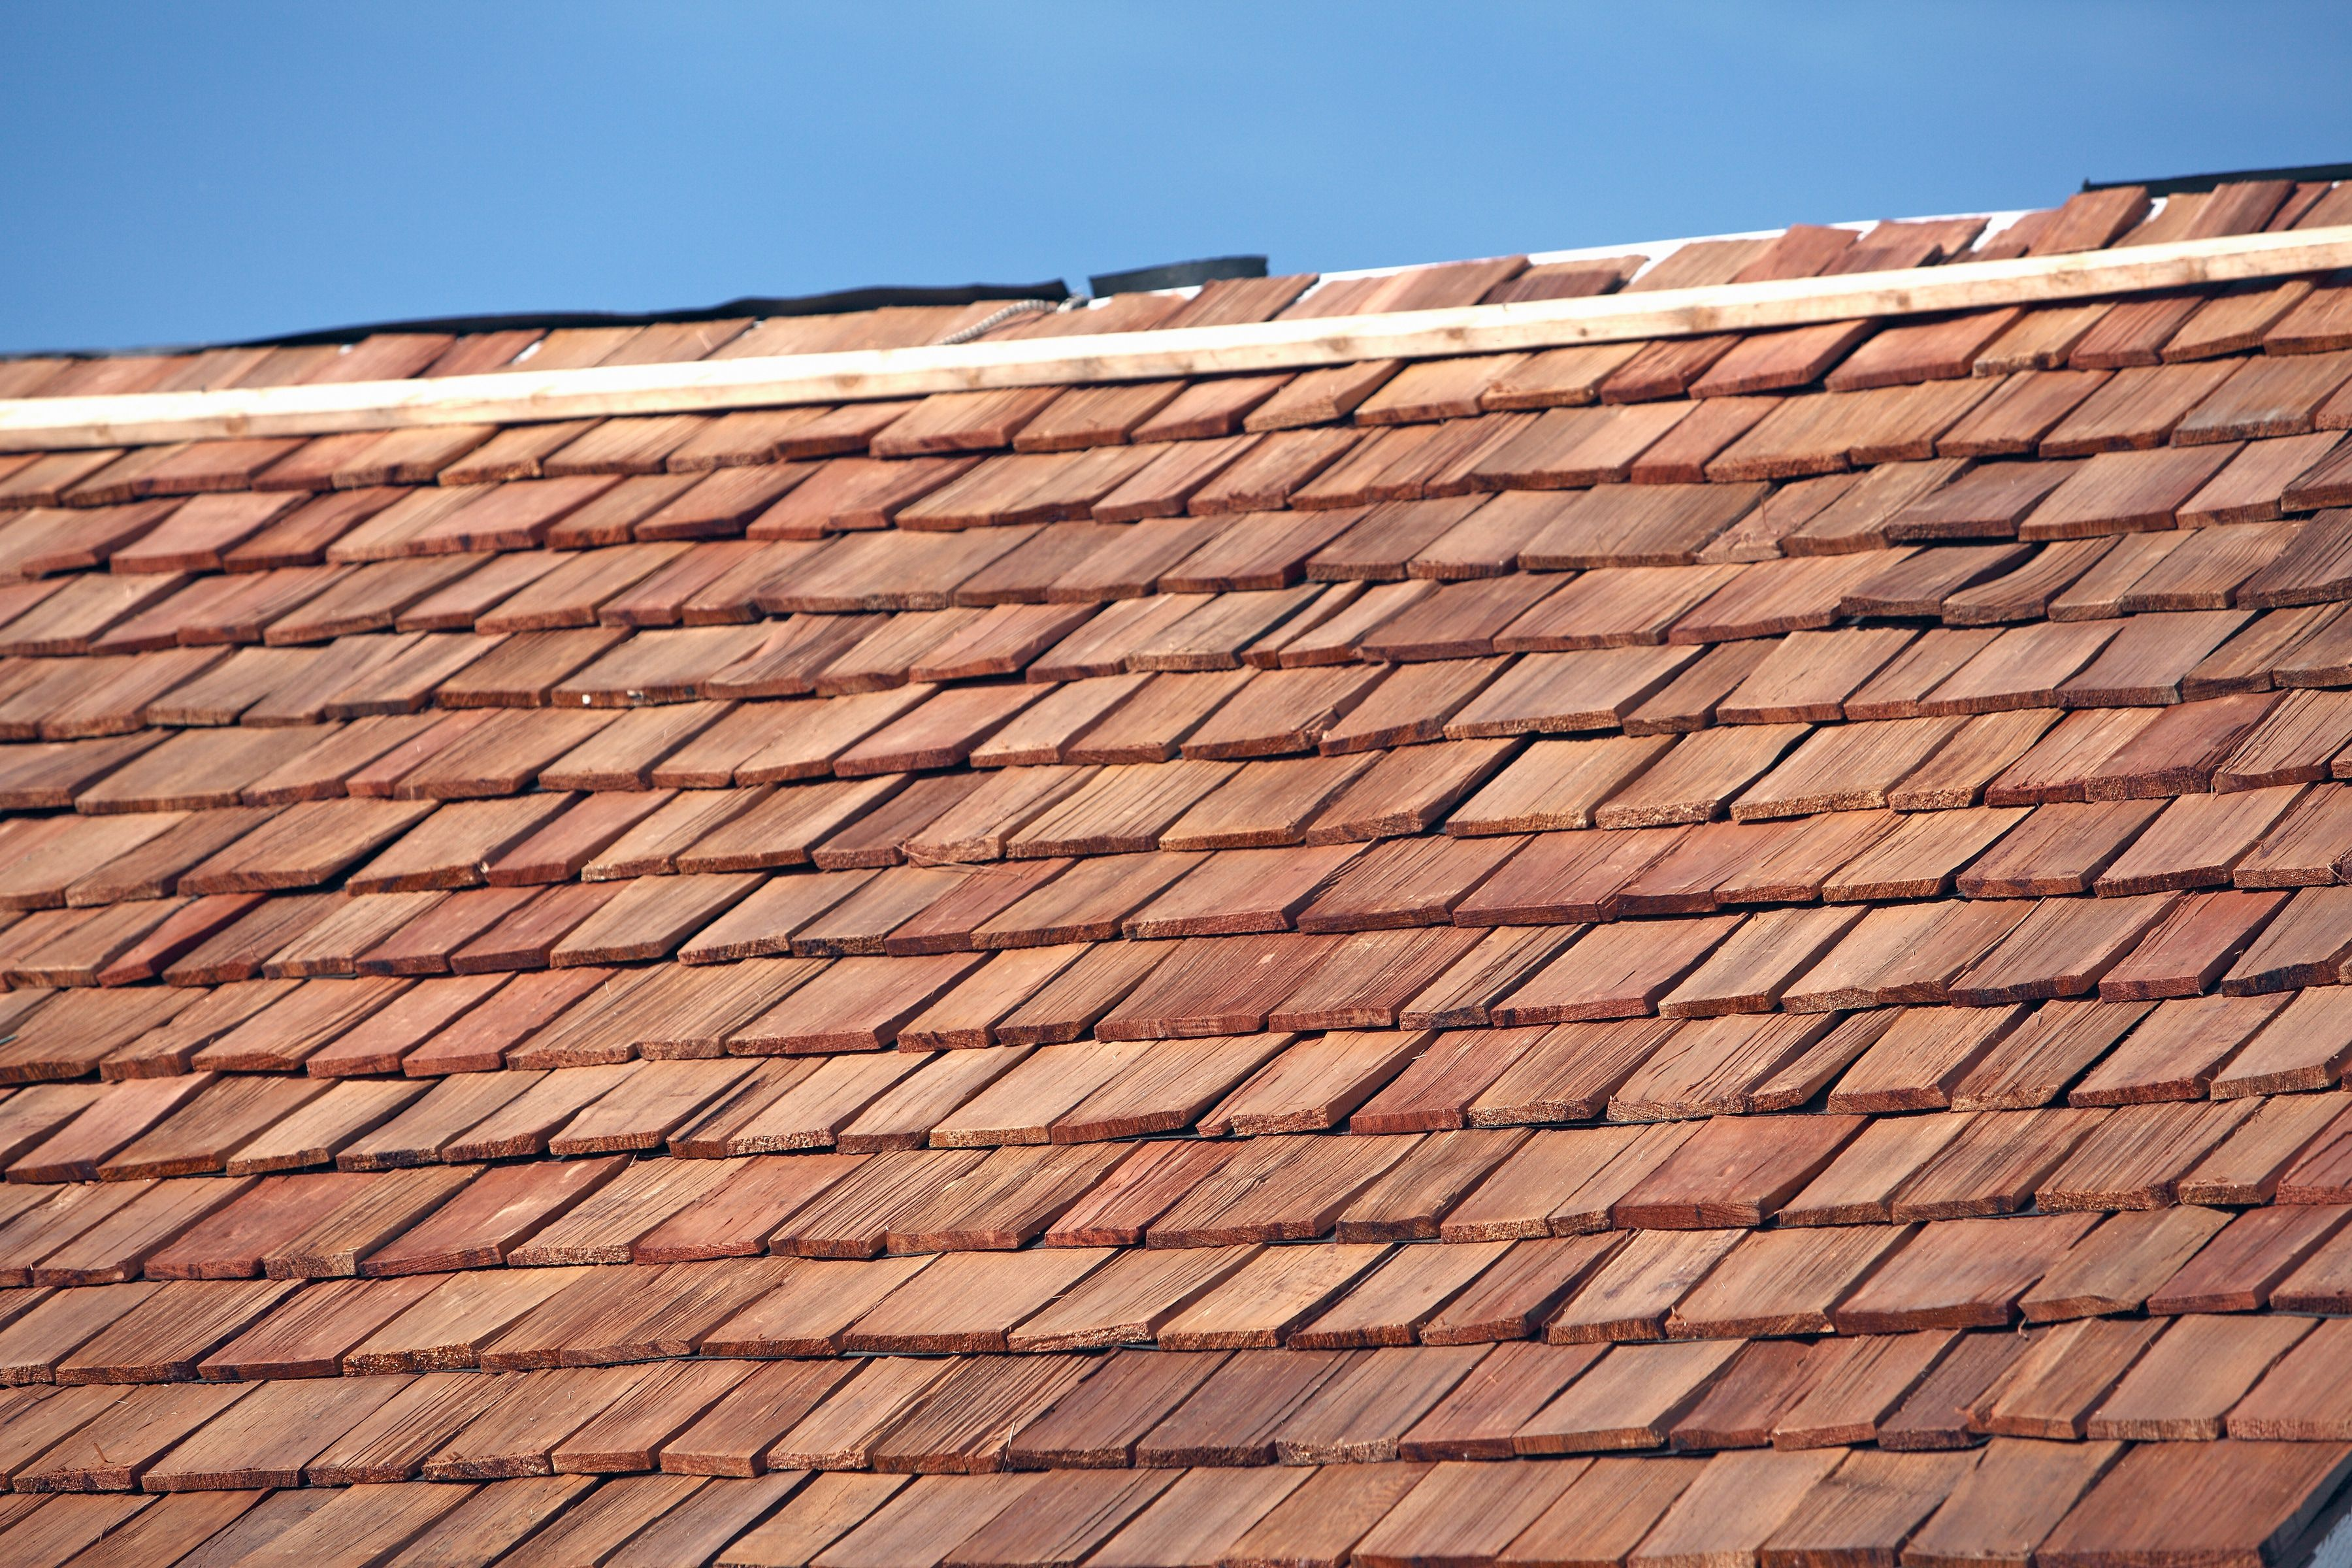 What Is A Shake Shingle Roof In 2020 Wood Shake Roof Shake Roof Cedar Roof